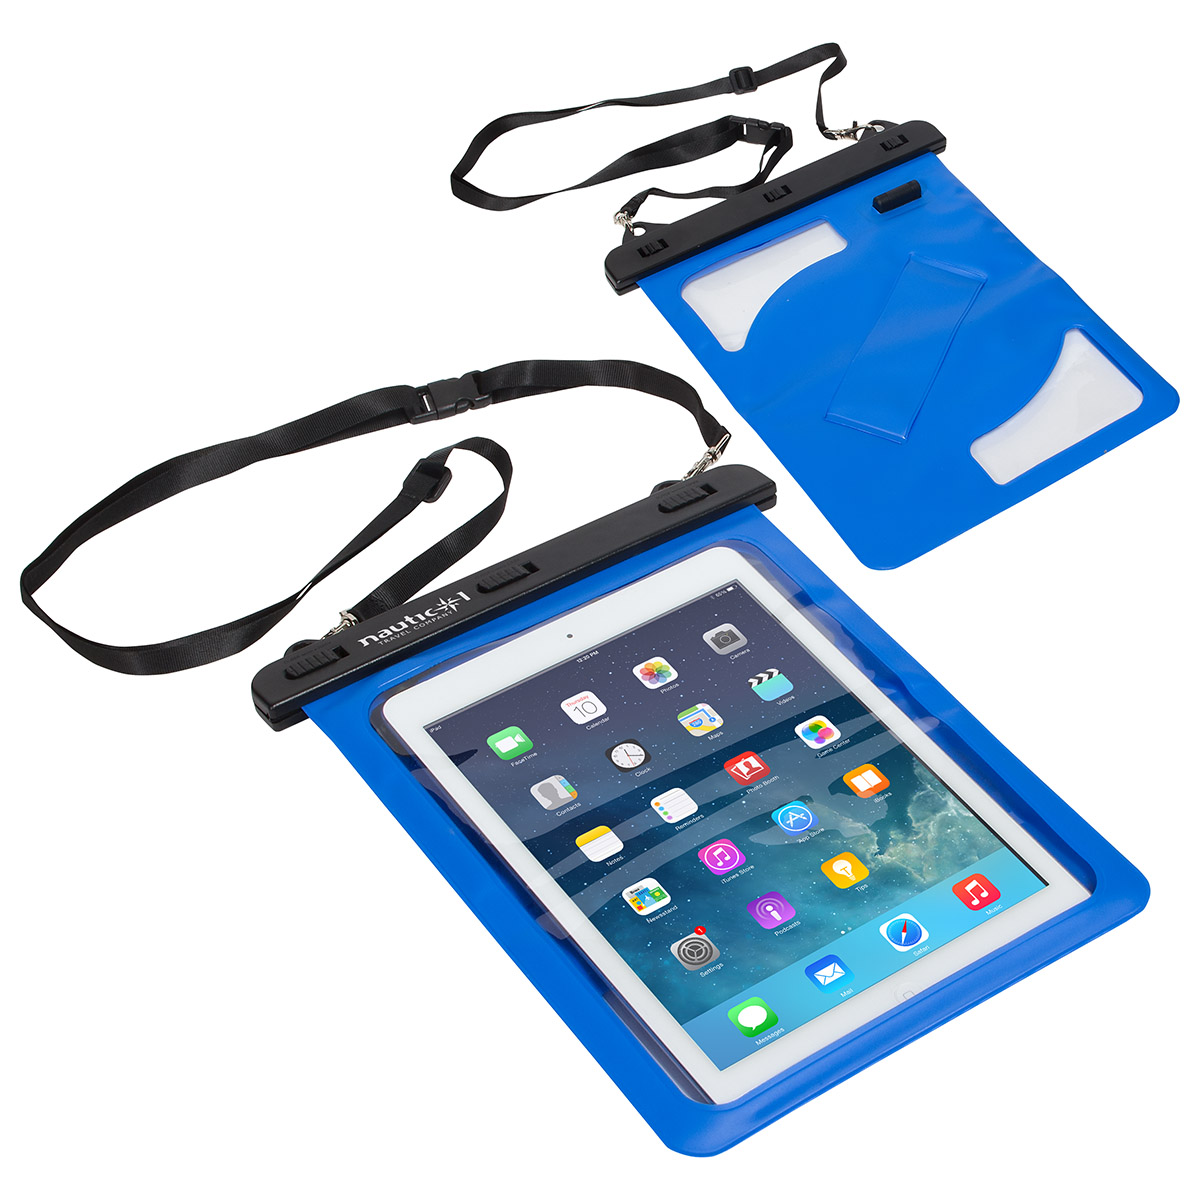 Waterproof Tablet Carrier with 3.5mm Audio Jack, WOR-TC16, 1 Colour Imprint